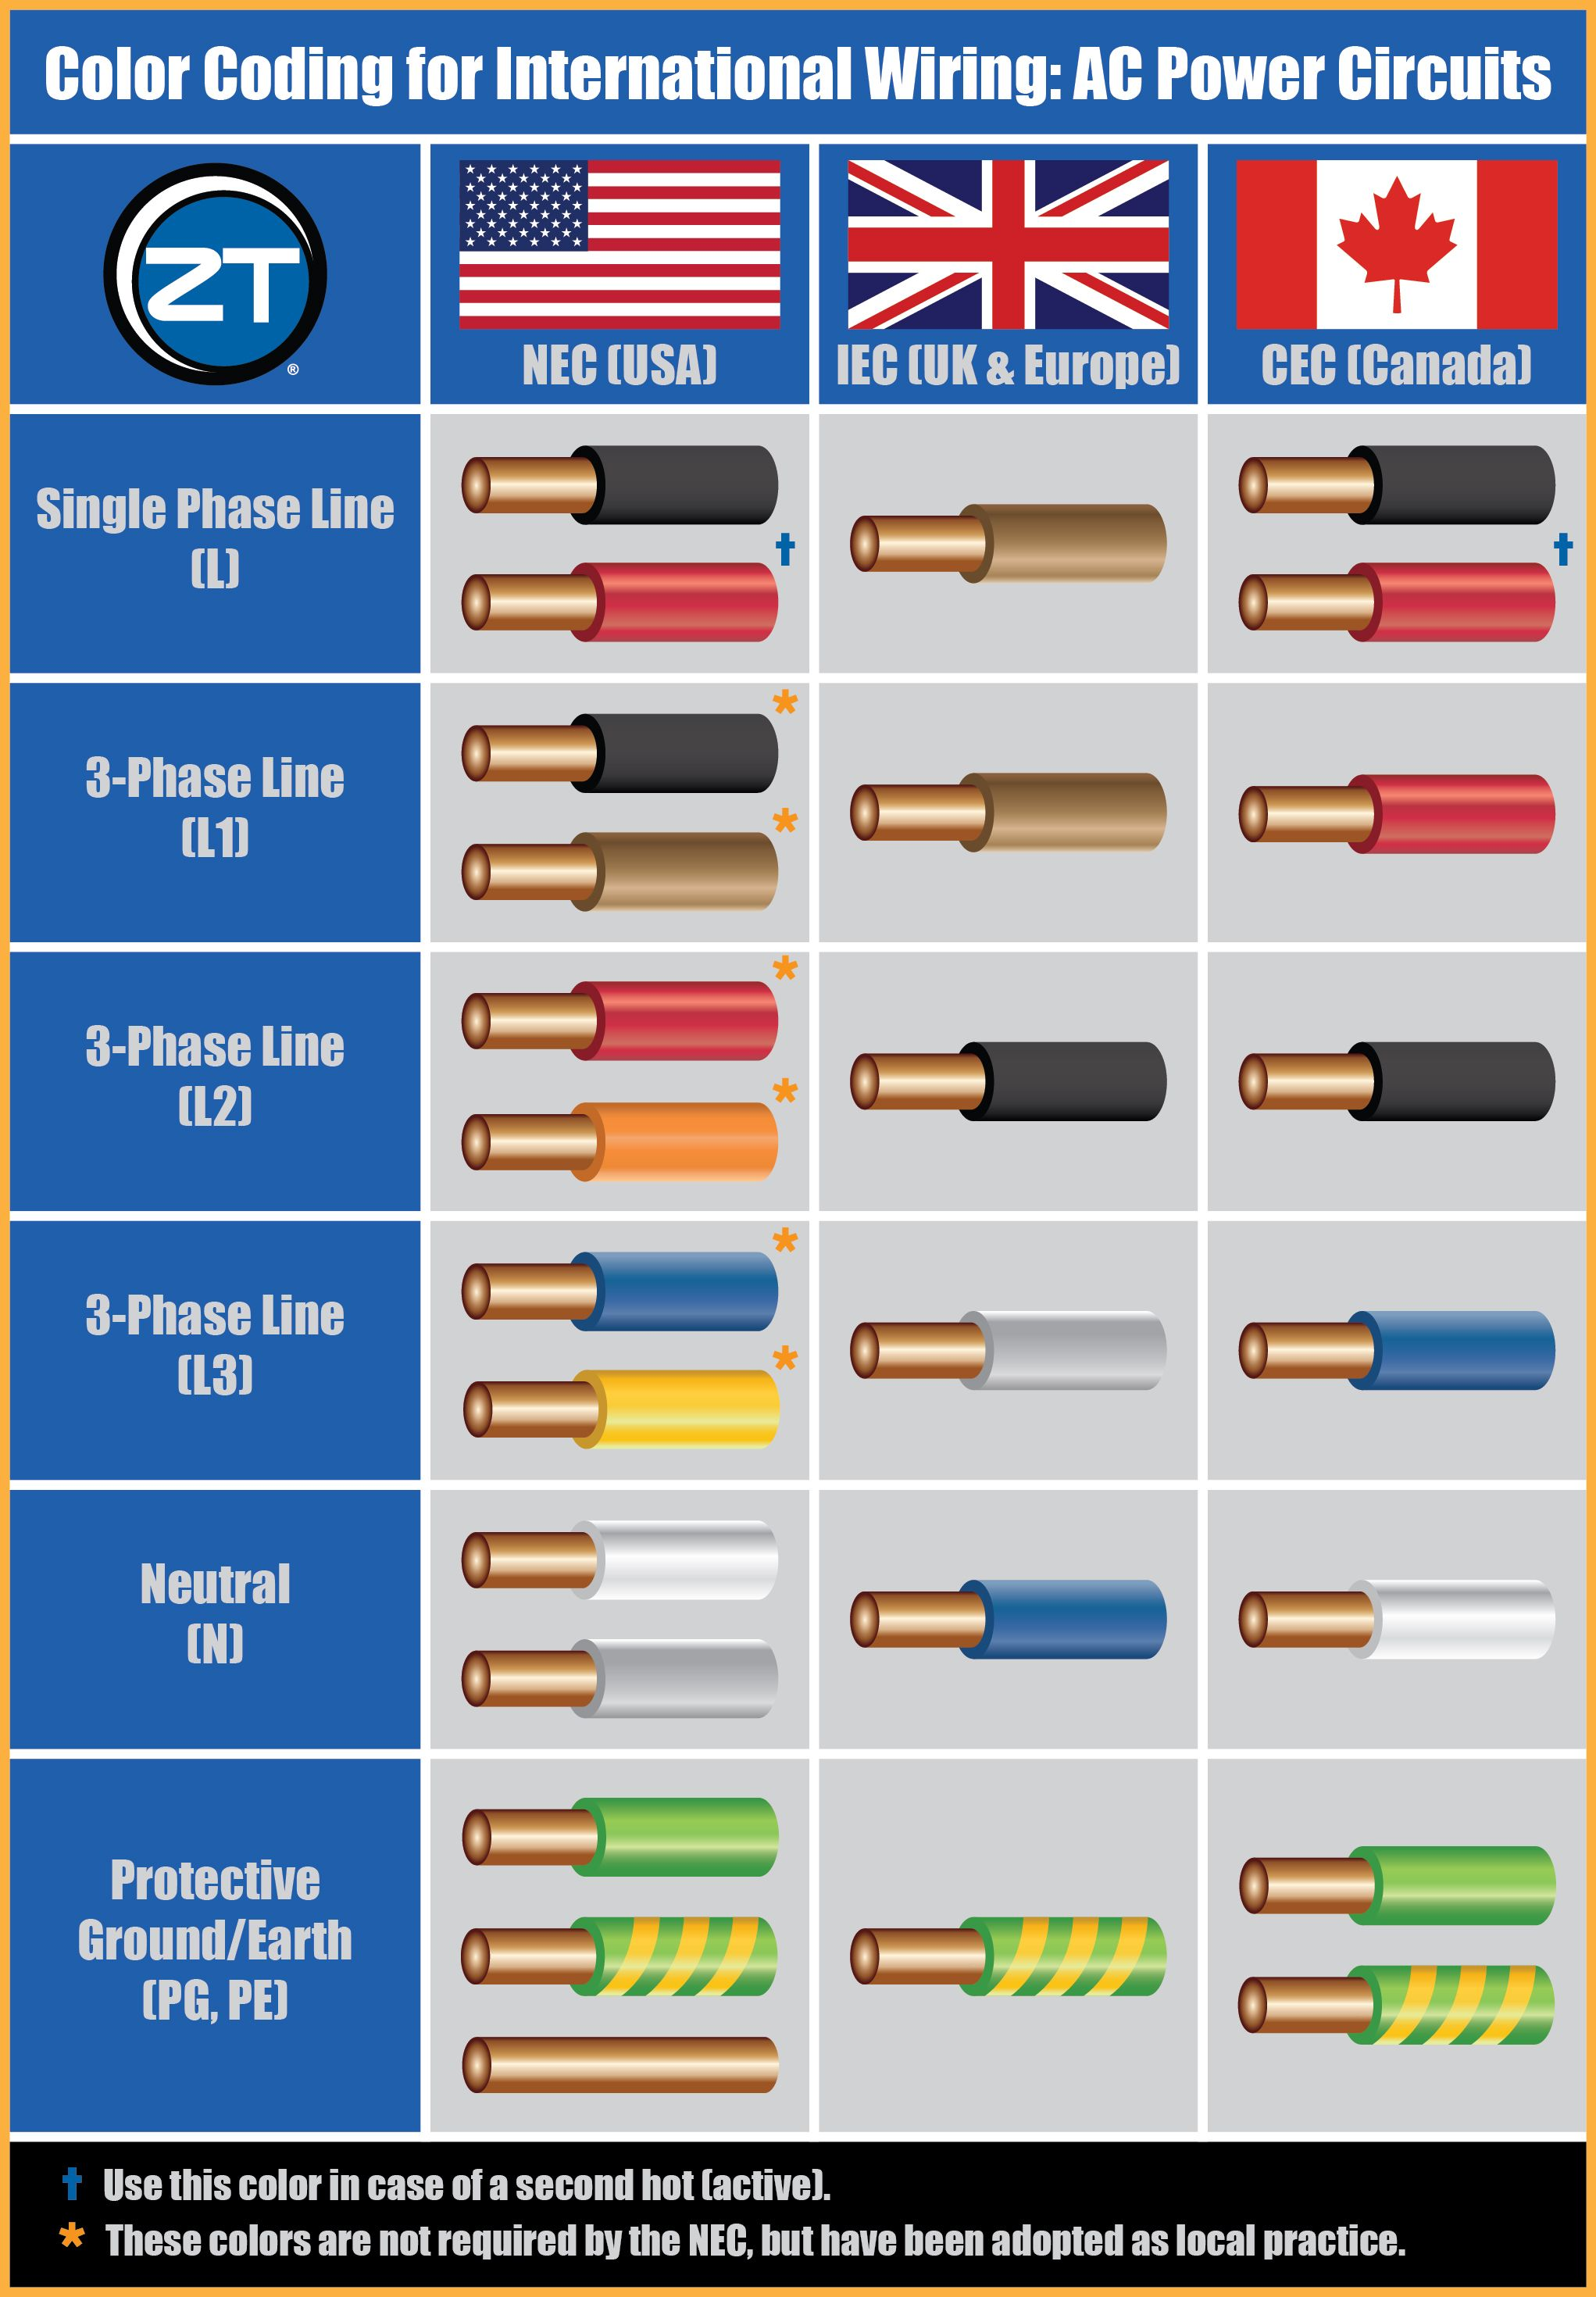 hight resolution of ac wiring color code wiring diagram expert wire color coding canada guide to color coding for